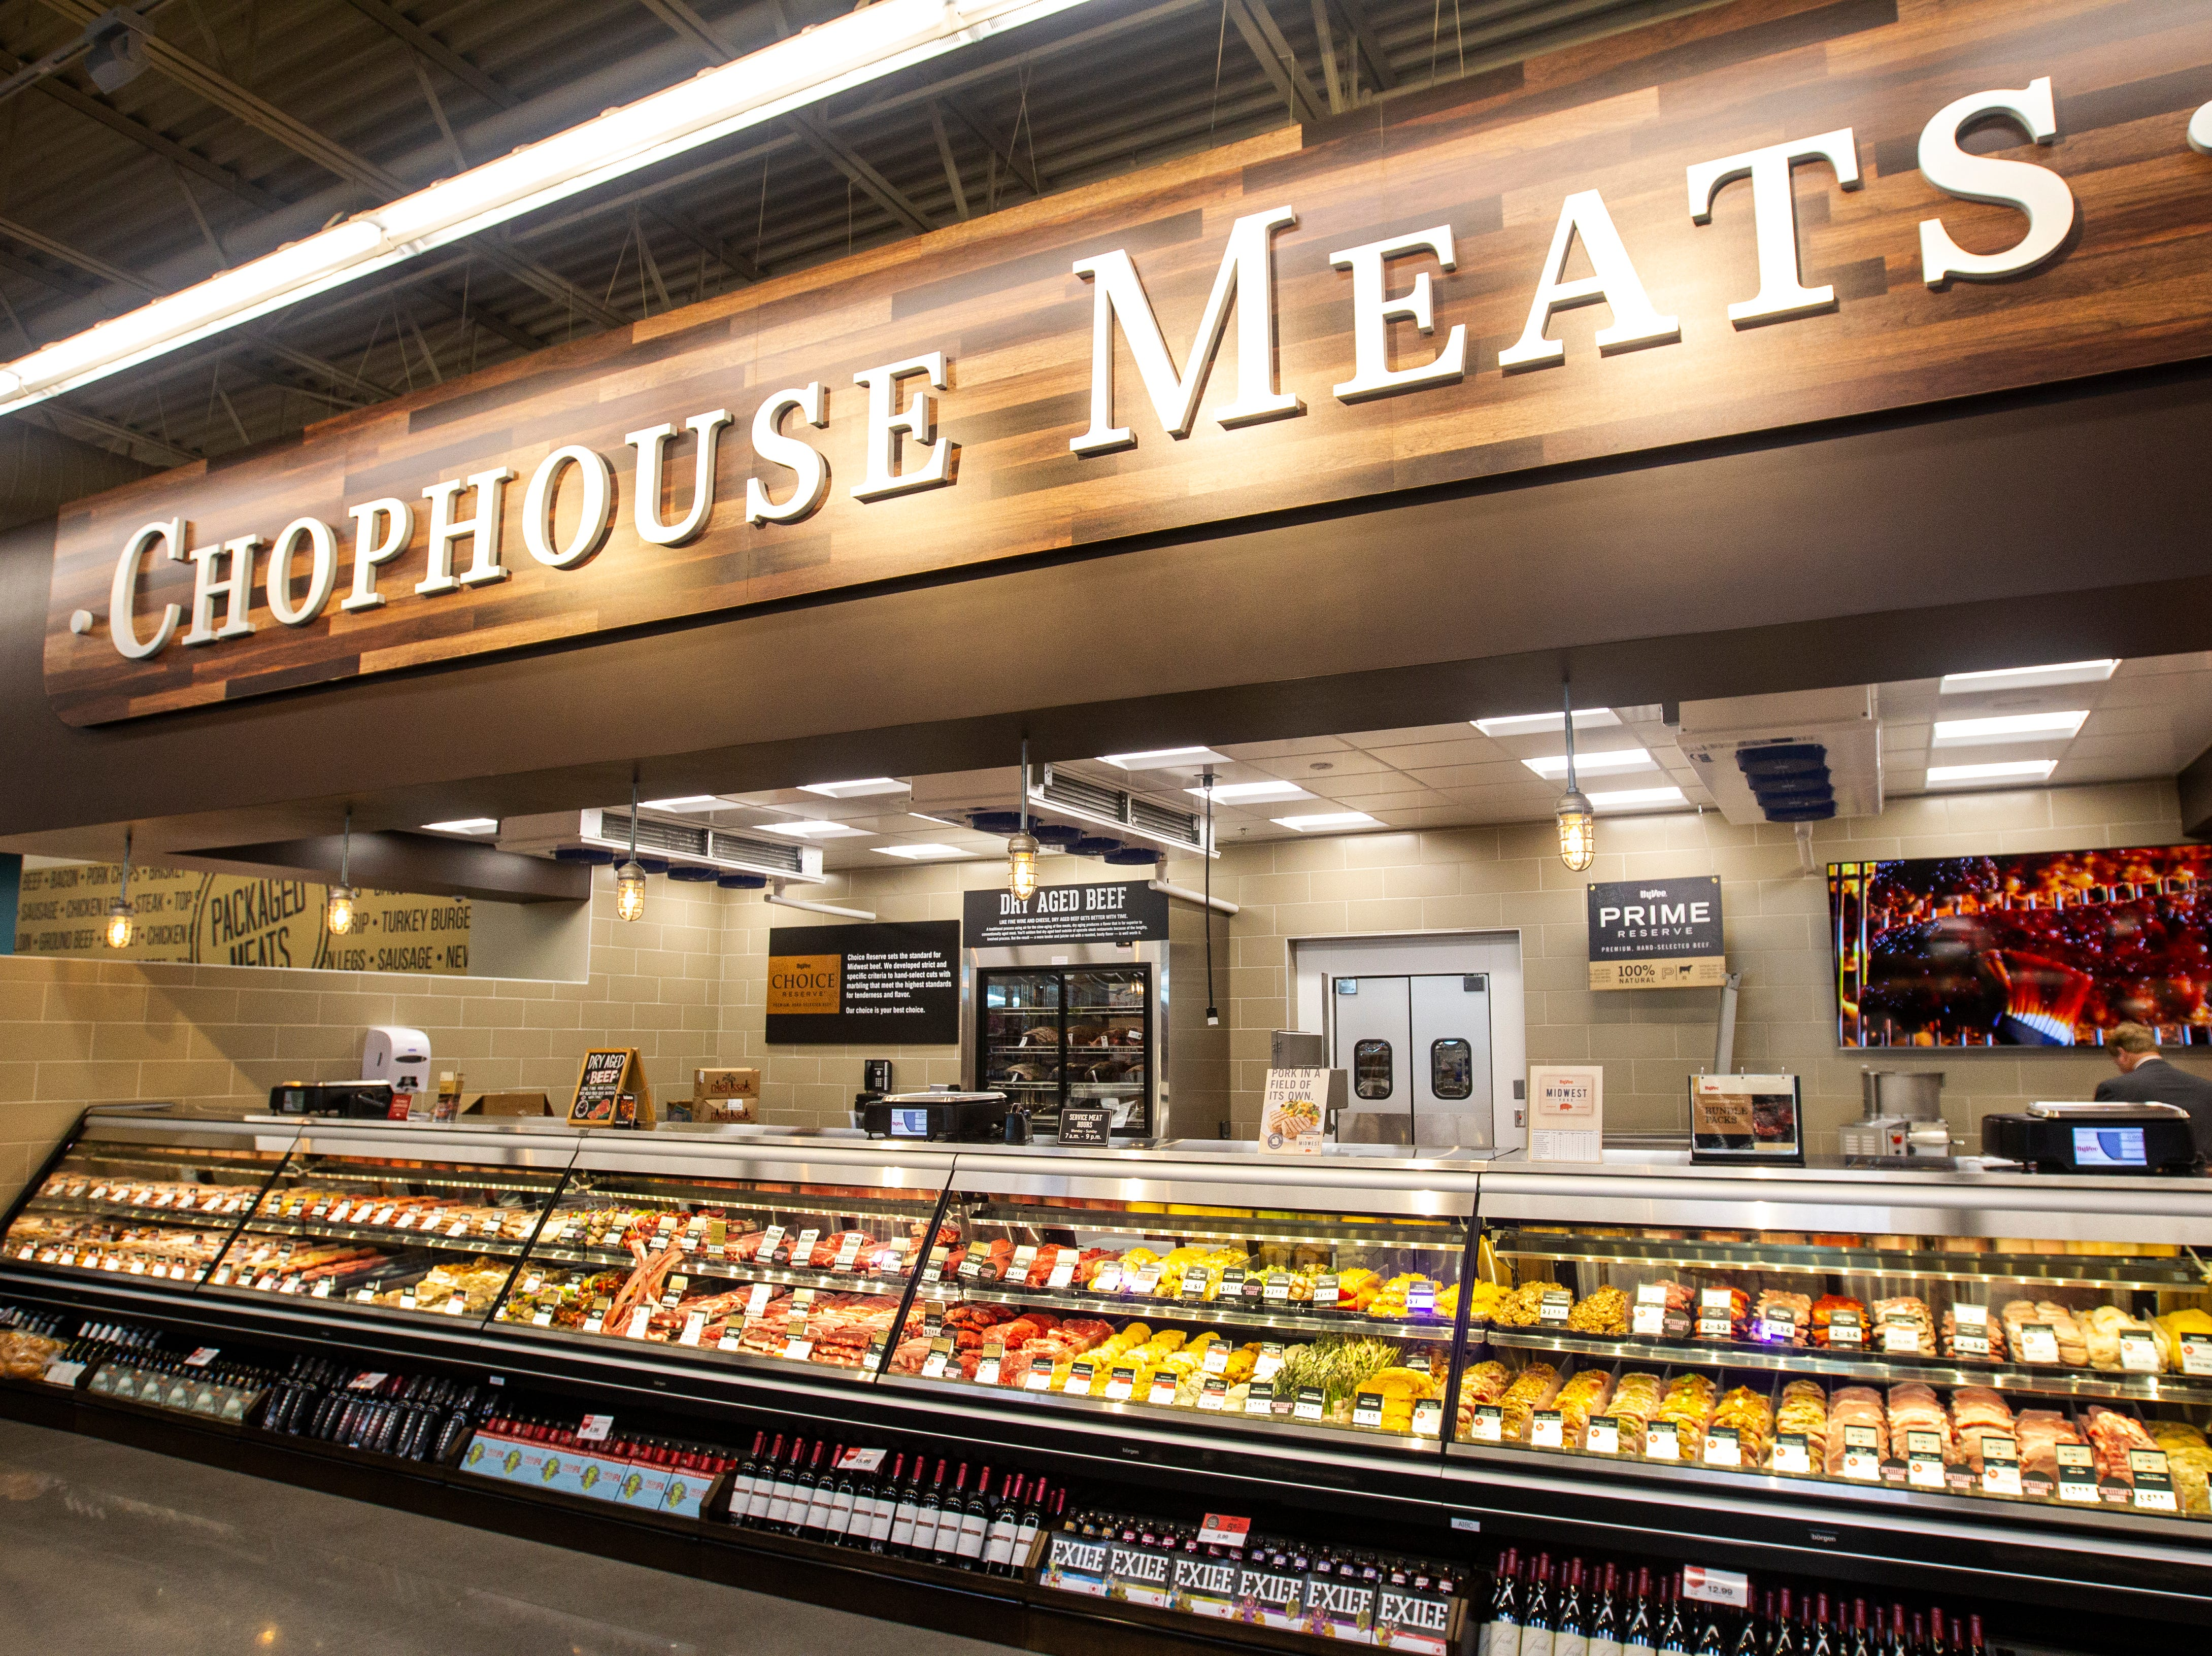 The chophouse meat department is seen at a new Hy-Vee on Monday, Oct. 15, 2018, along Crosspark Road in Coralville, Iowa.